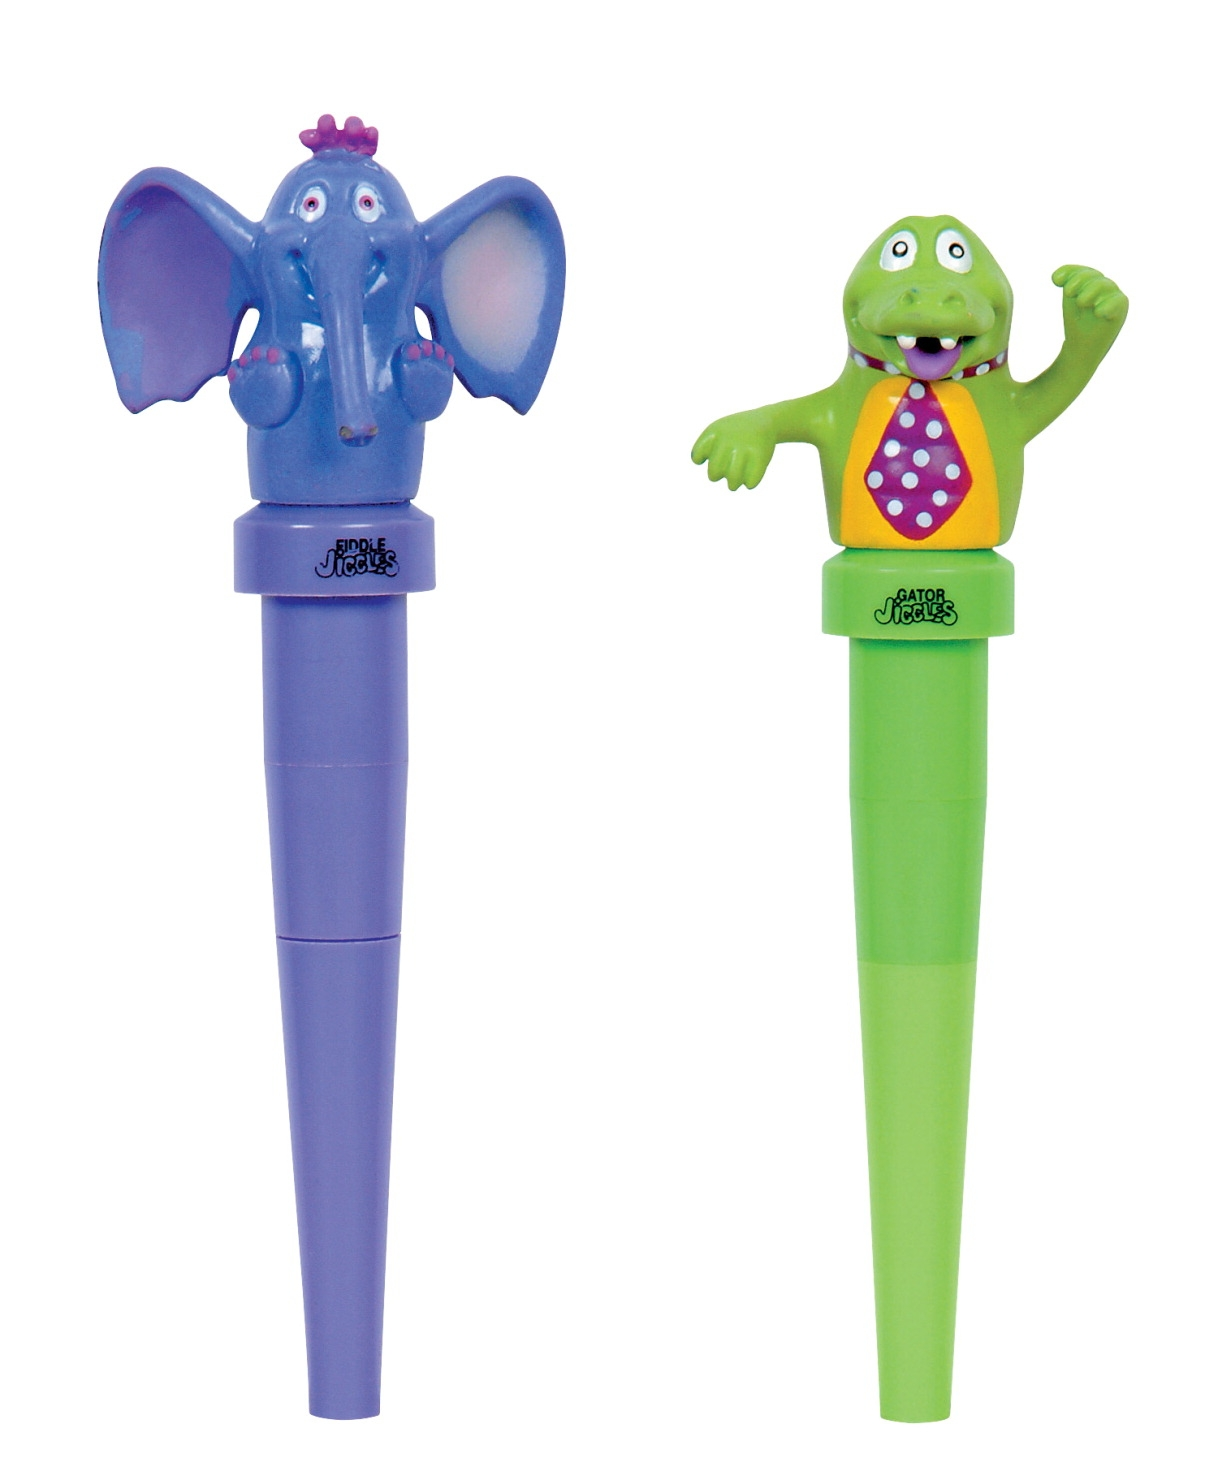 Jigglers Massager Elephant And Gator Chewable Oral Massager-pair Of 2 - 1452392 - Special Needs Sensory Processing Multi Sensory 1452392